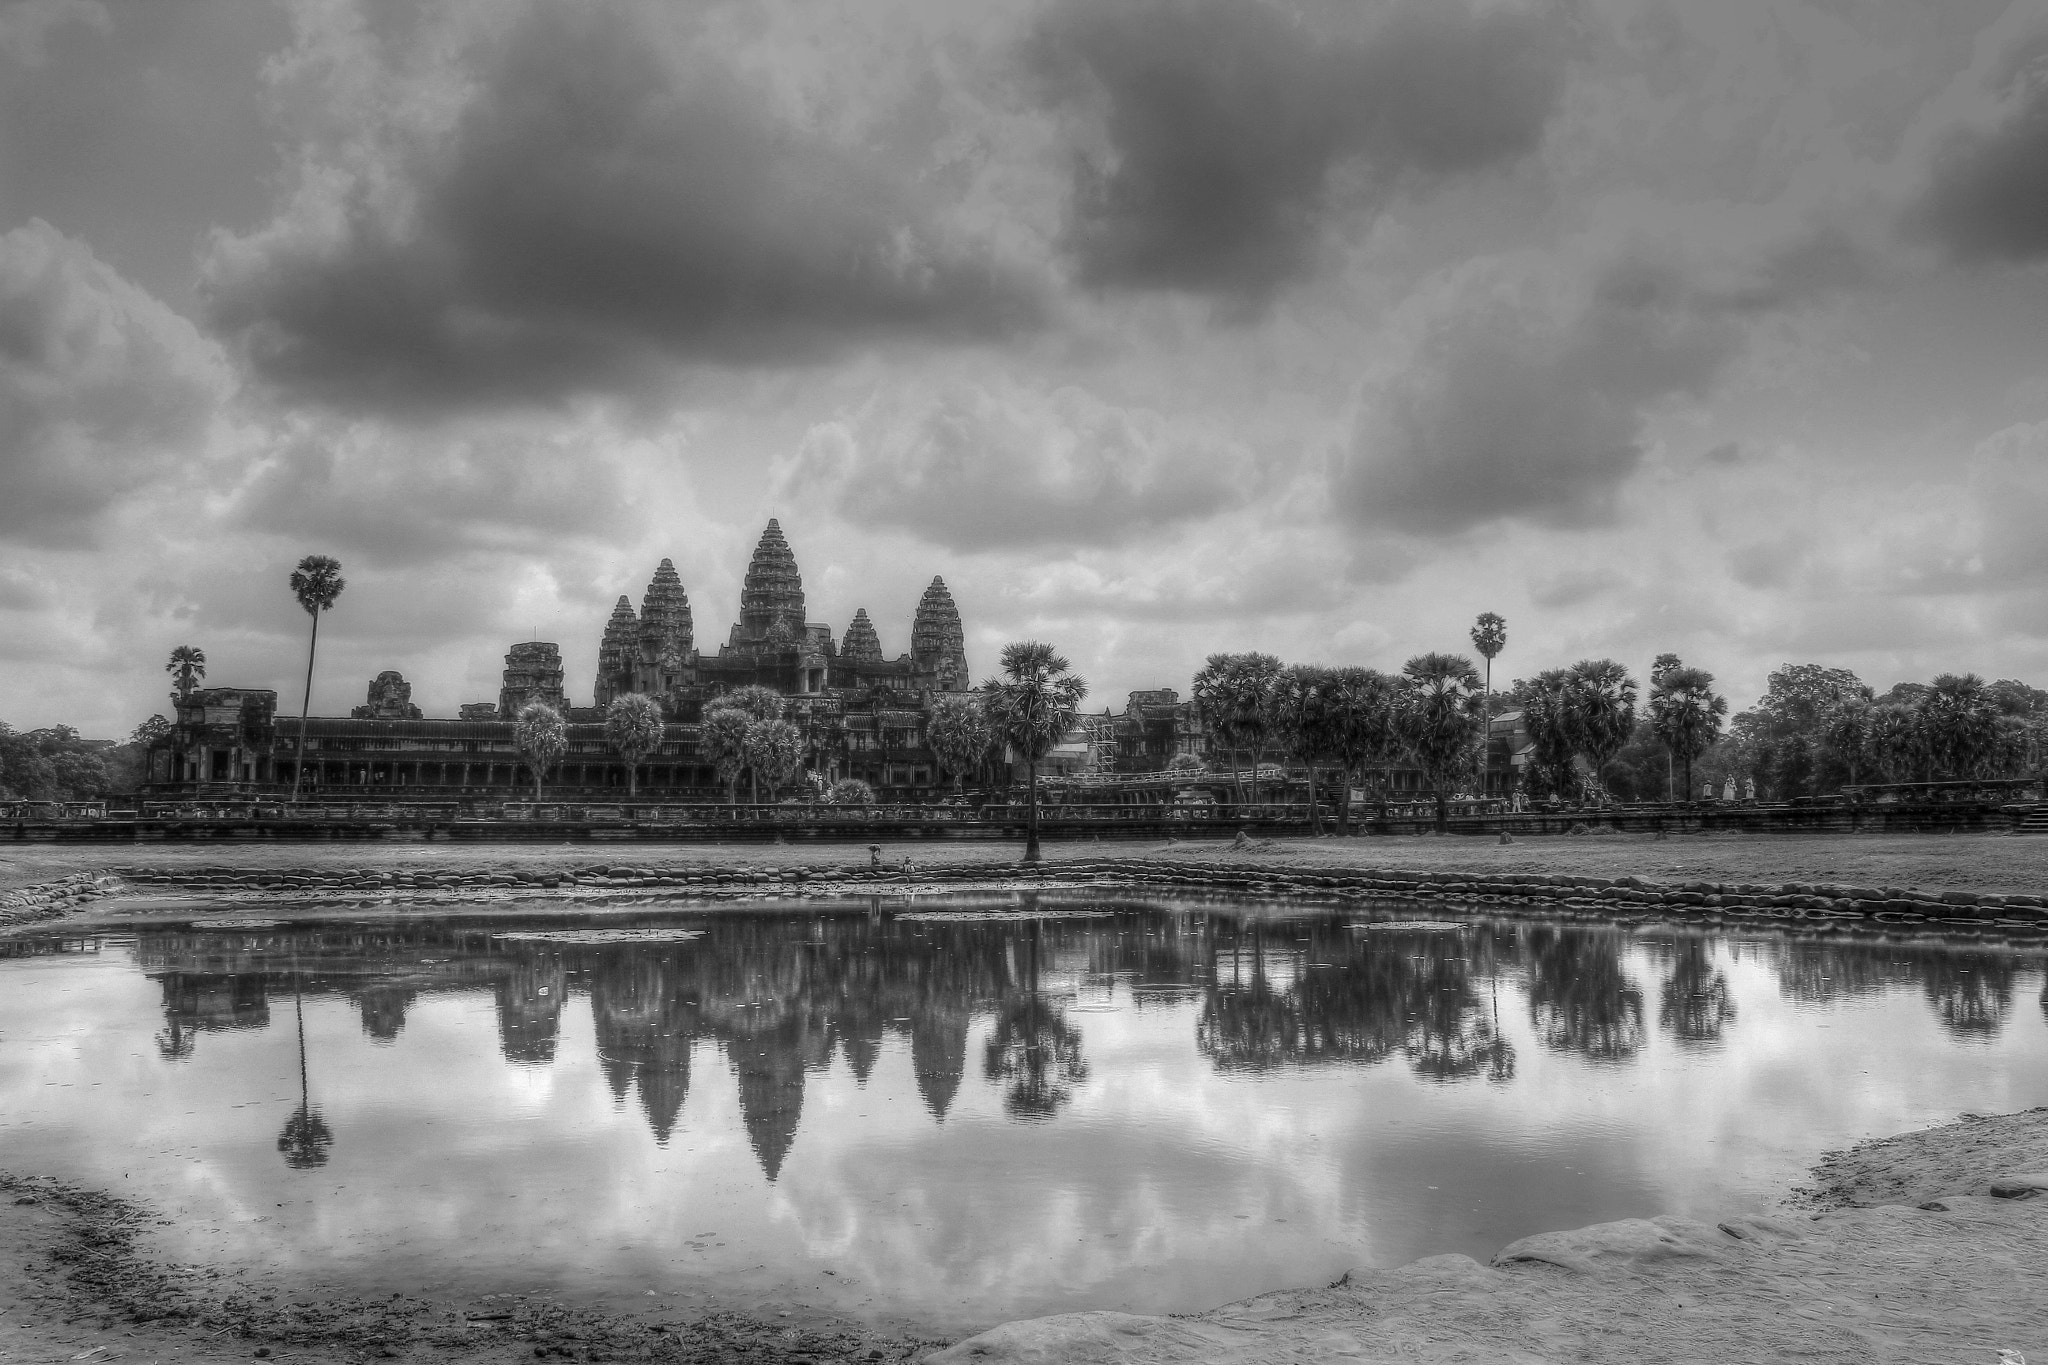 Photograph Angkorwat by lang sodina on 500px